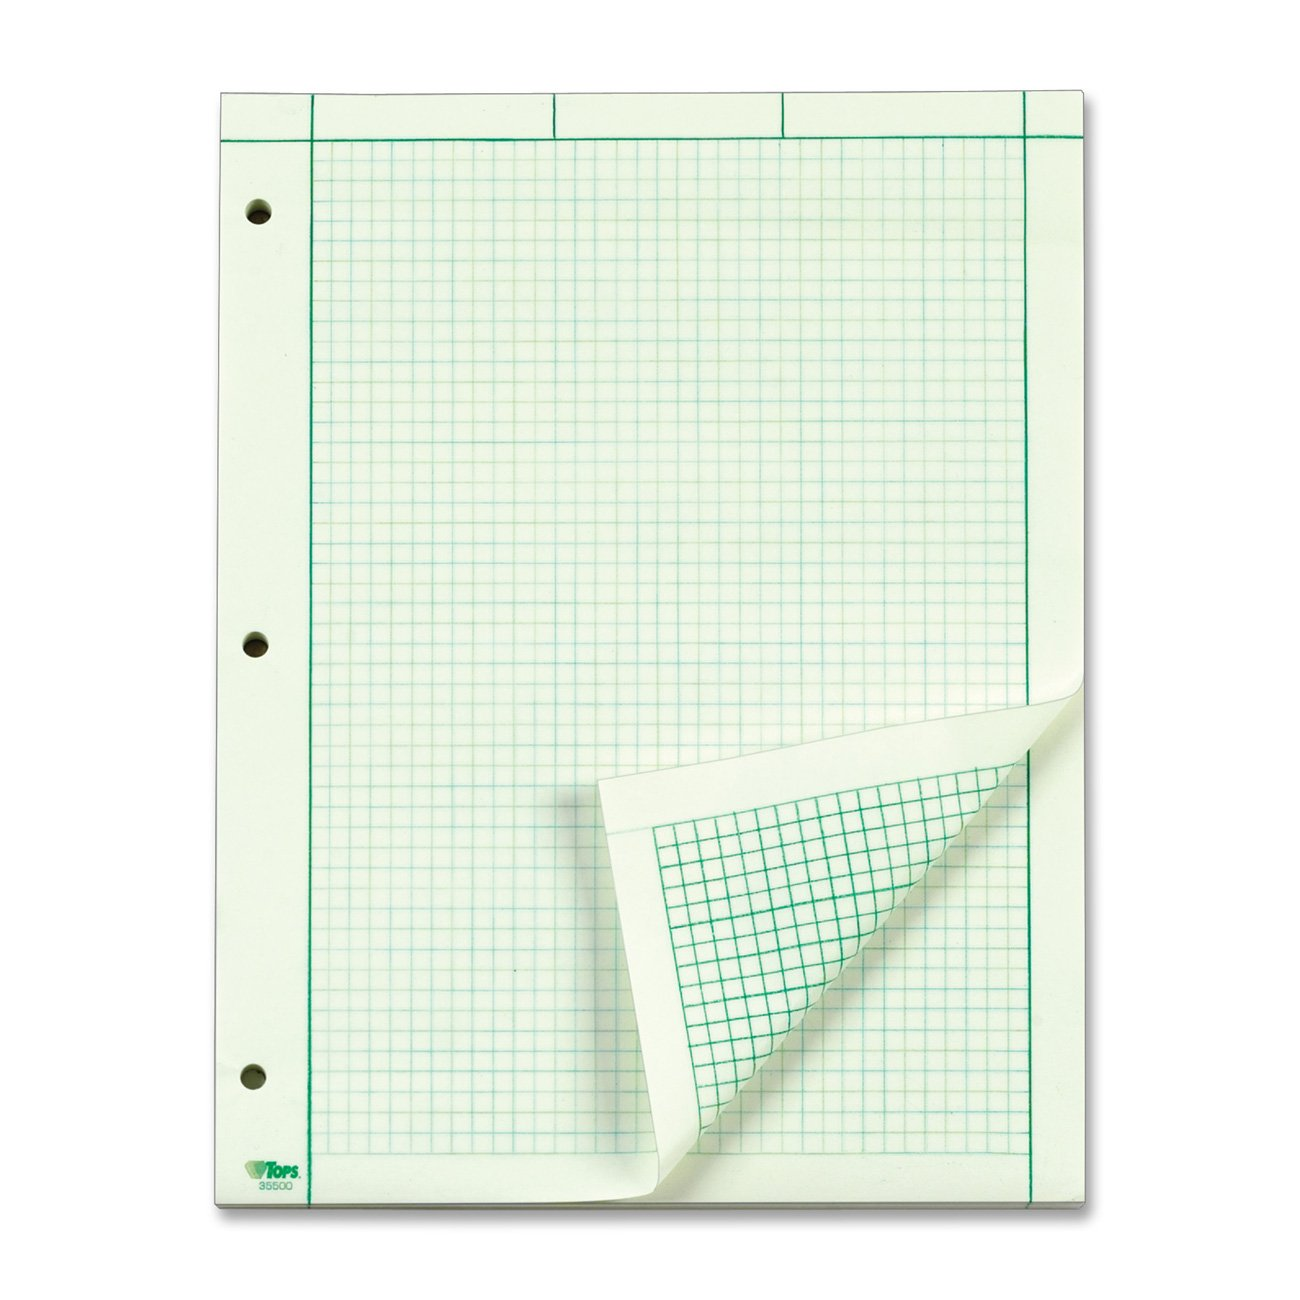 Graph Paper Sample Gis Consultant Cover Letter Advertising 71YffYIE15L  Graph Paper Samplehtml How To Print Graph